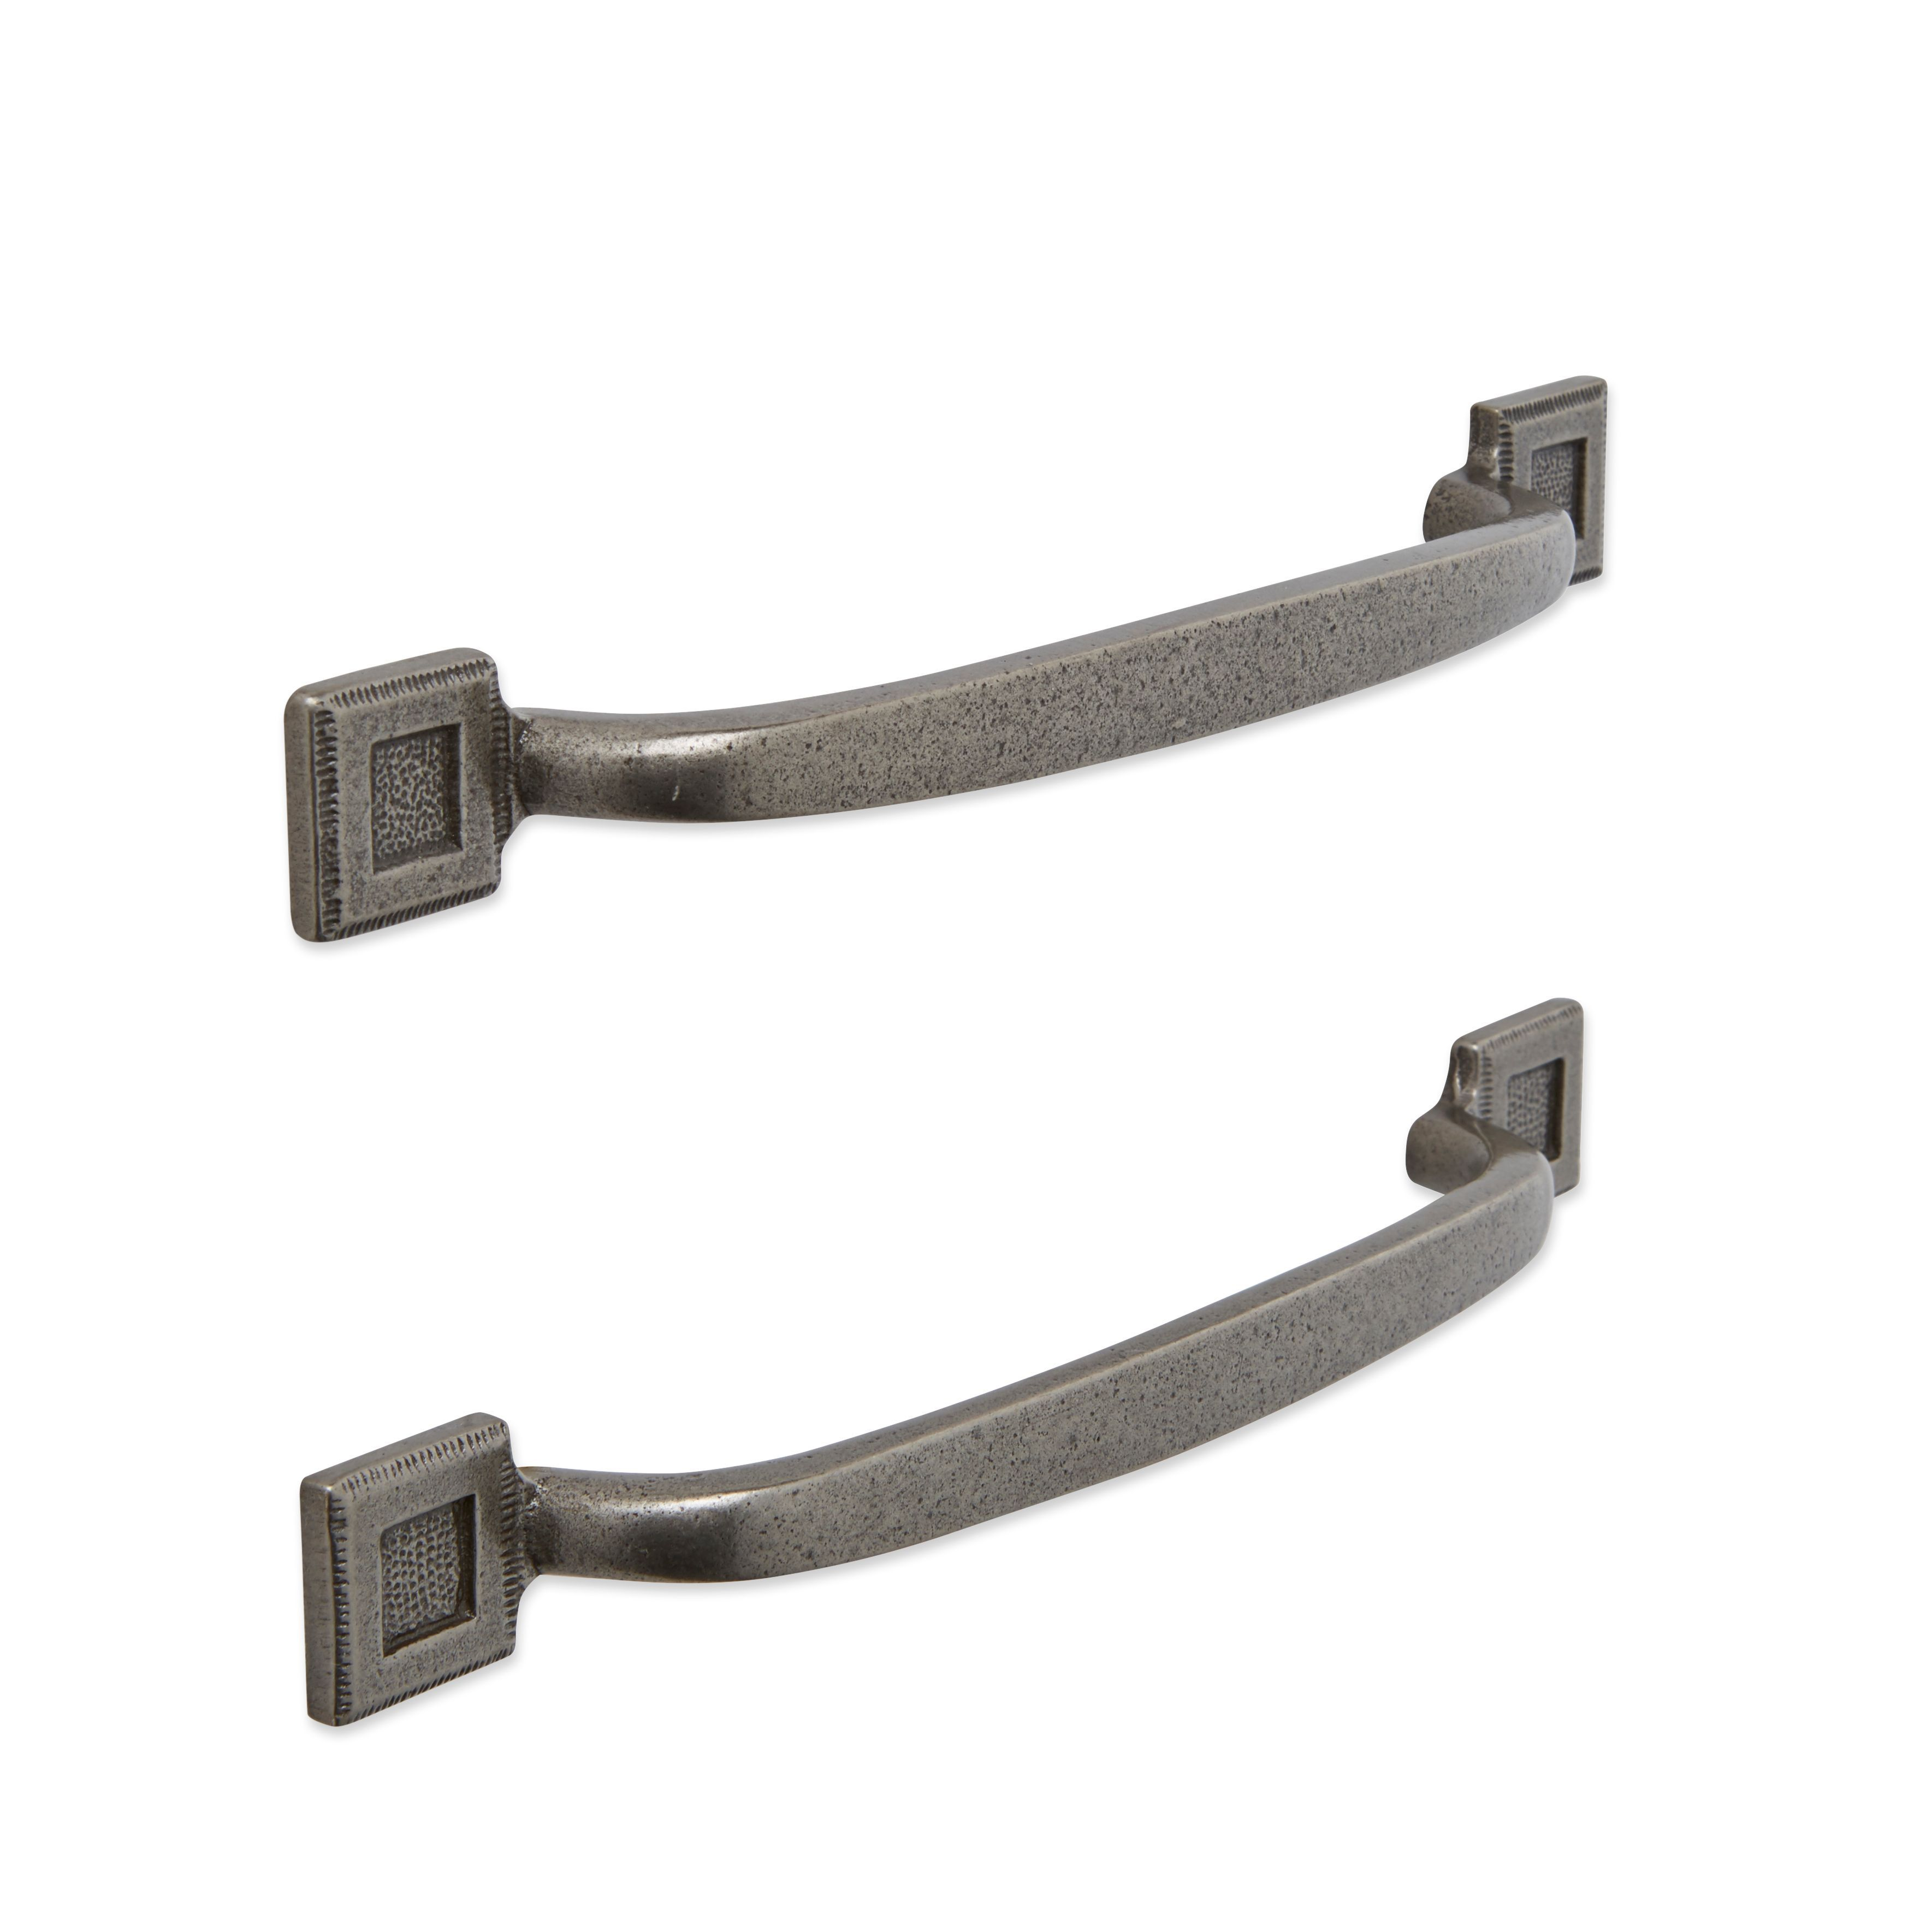 It Kitchens Pewter Effect D-shaped Cabinet Handle, Pack Of 2